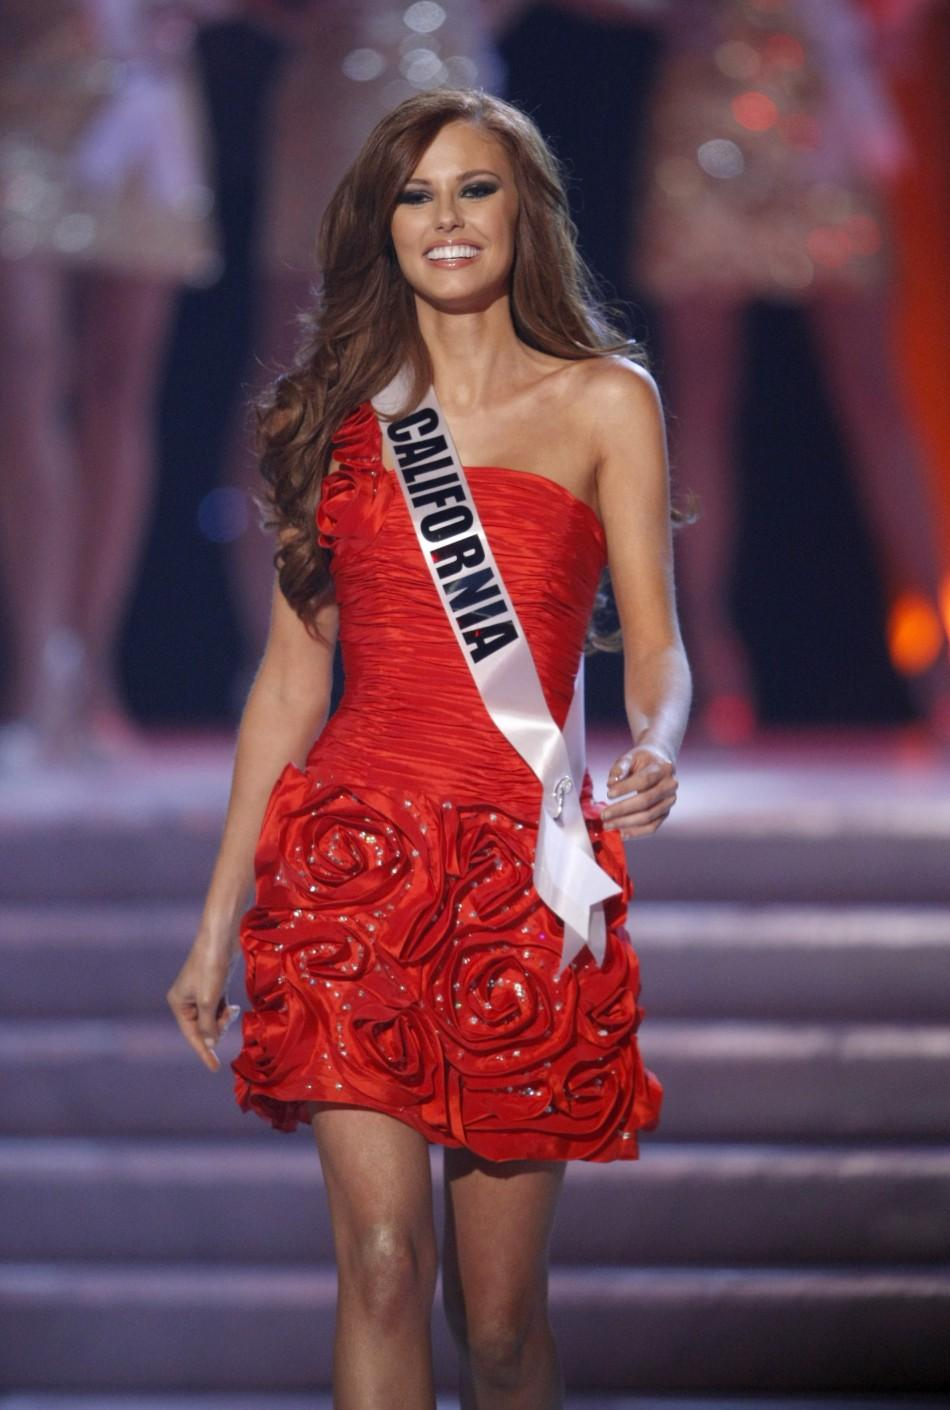 Miss California Alyssa Campanella arrives to introduce herself during the 2011 Miss USA pageant in the Theatre for the Performing Arts at Planet Hollywood Hotel and Casino in Las Vegas, Nevada June 19, 2011.